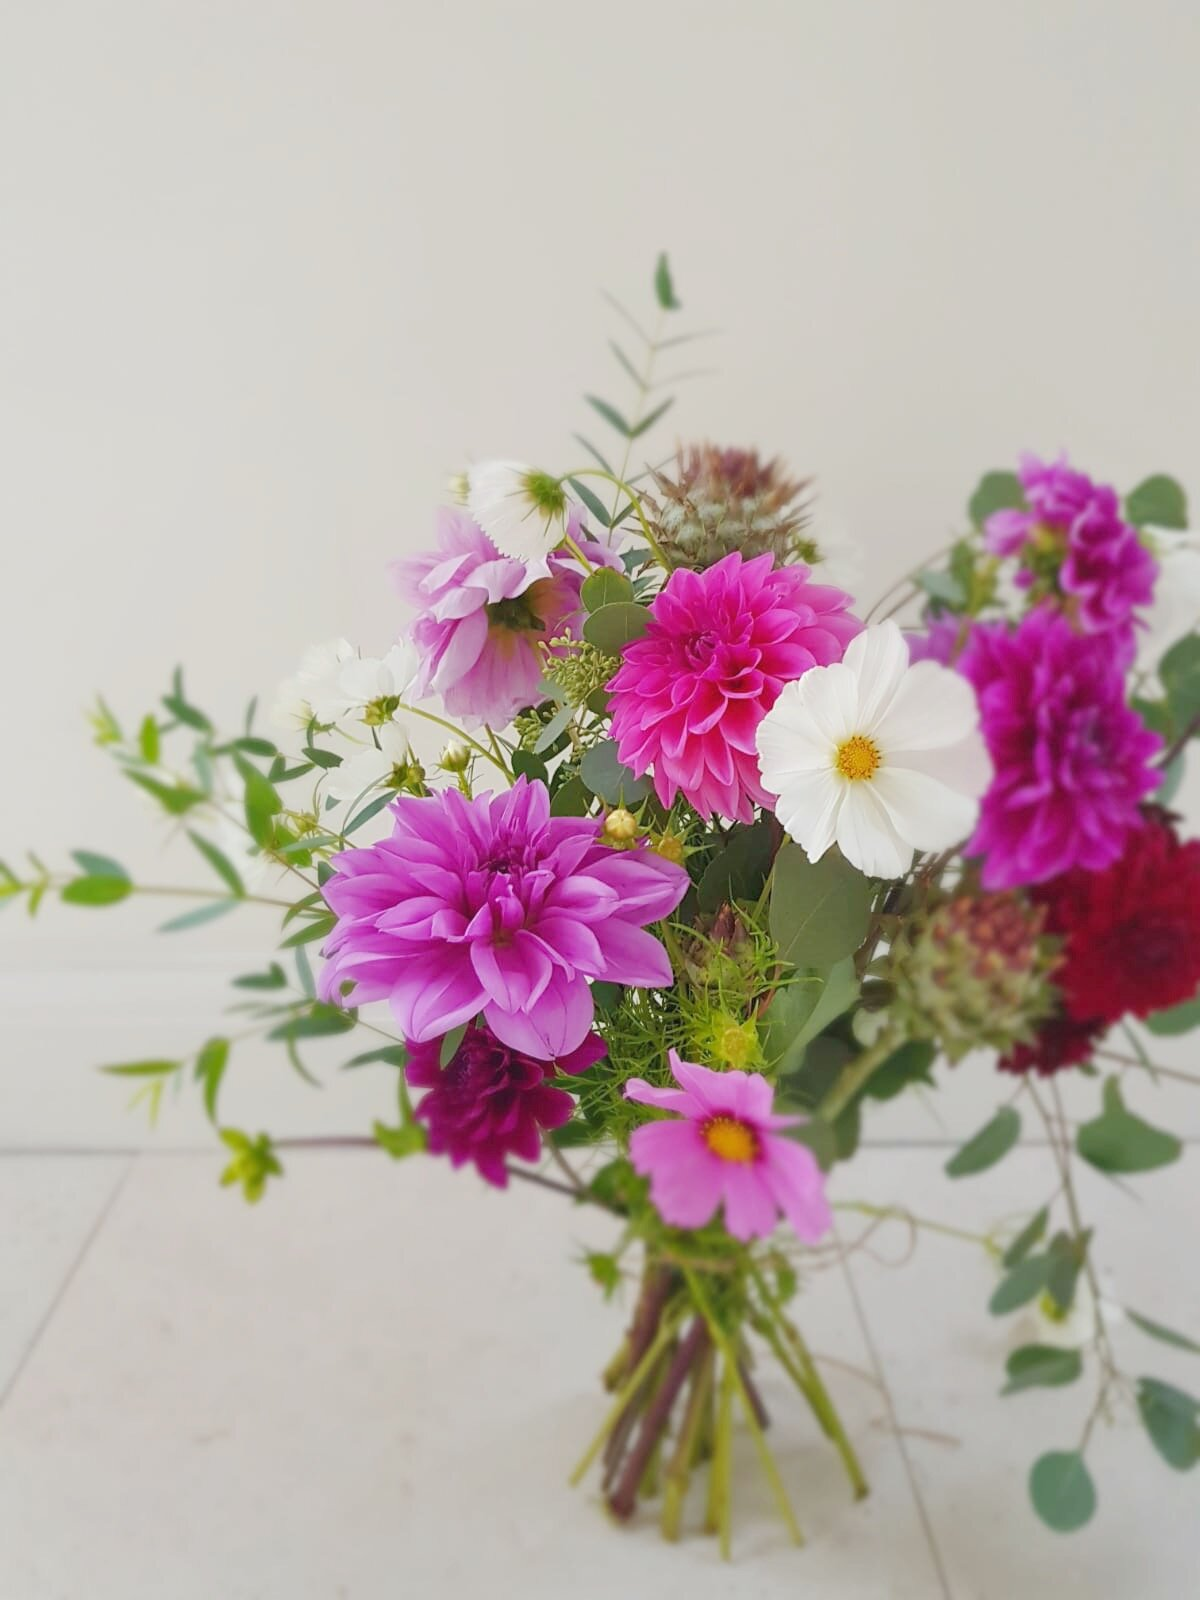 Subscription flowers - August 2019